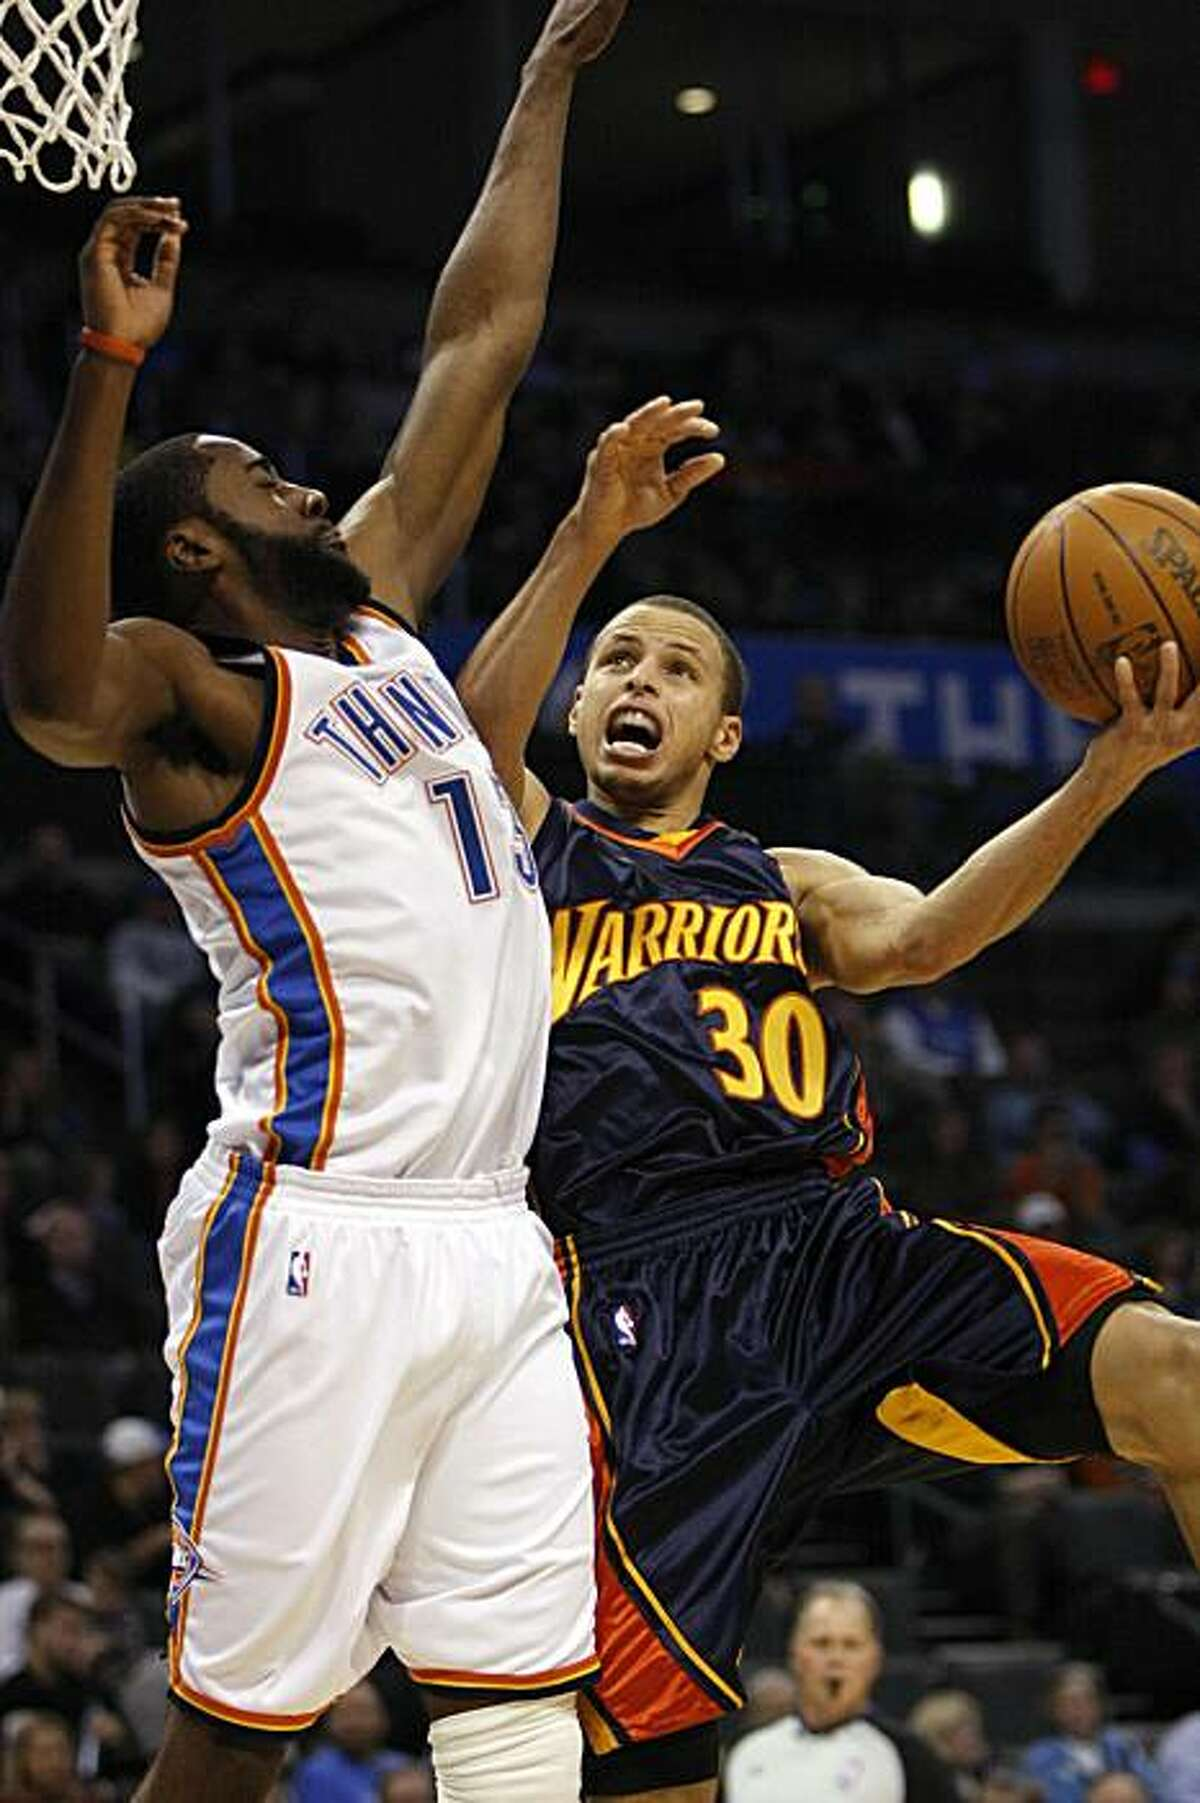 Golden State Warriors guard Stephen Curry goes up for a shot as Oklahoma City Thunder's James Harden defends in the first half in Oklahoma City on Monday.